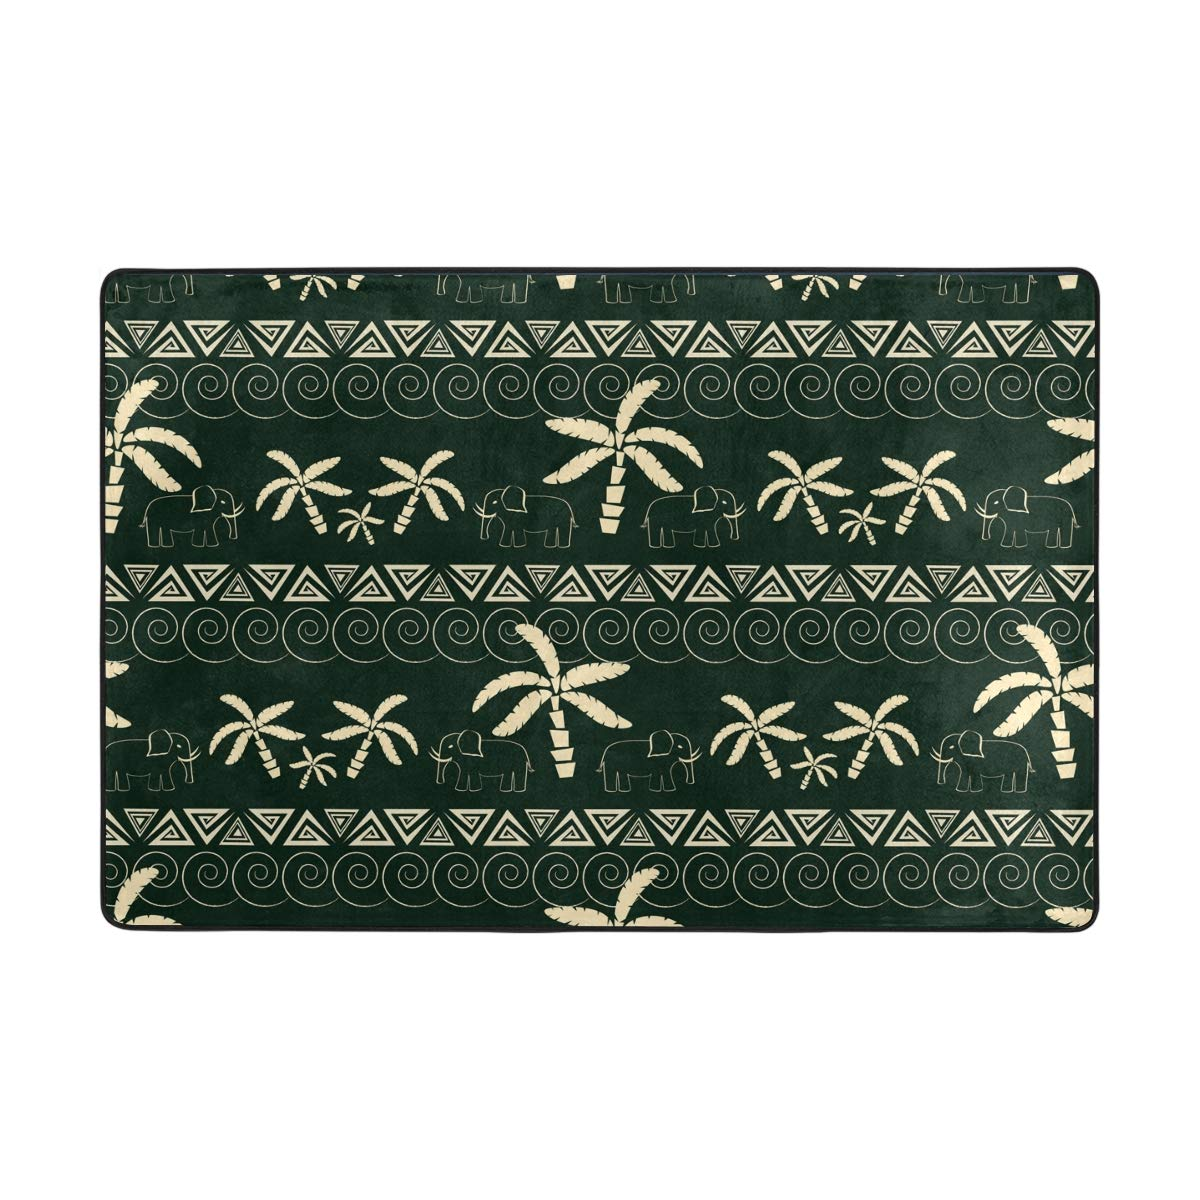 ALAZA Tropical Palm Tree & Elephant Door Mat Inside Outside Non Slip Doormat for Entrance Way Outdoors Indoor Soft Washable Bath Floor Mats One Piece 24x36 Inch